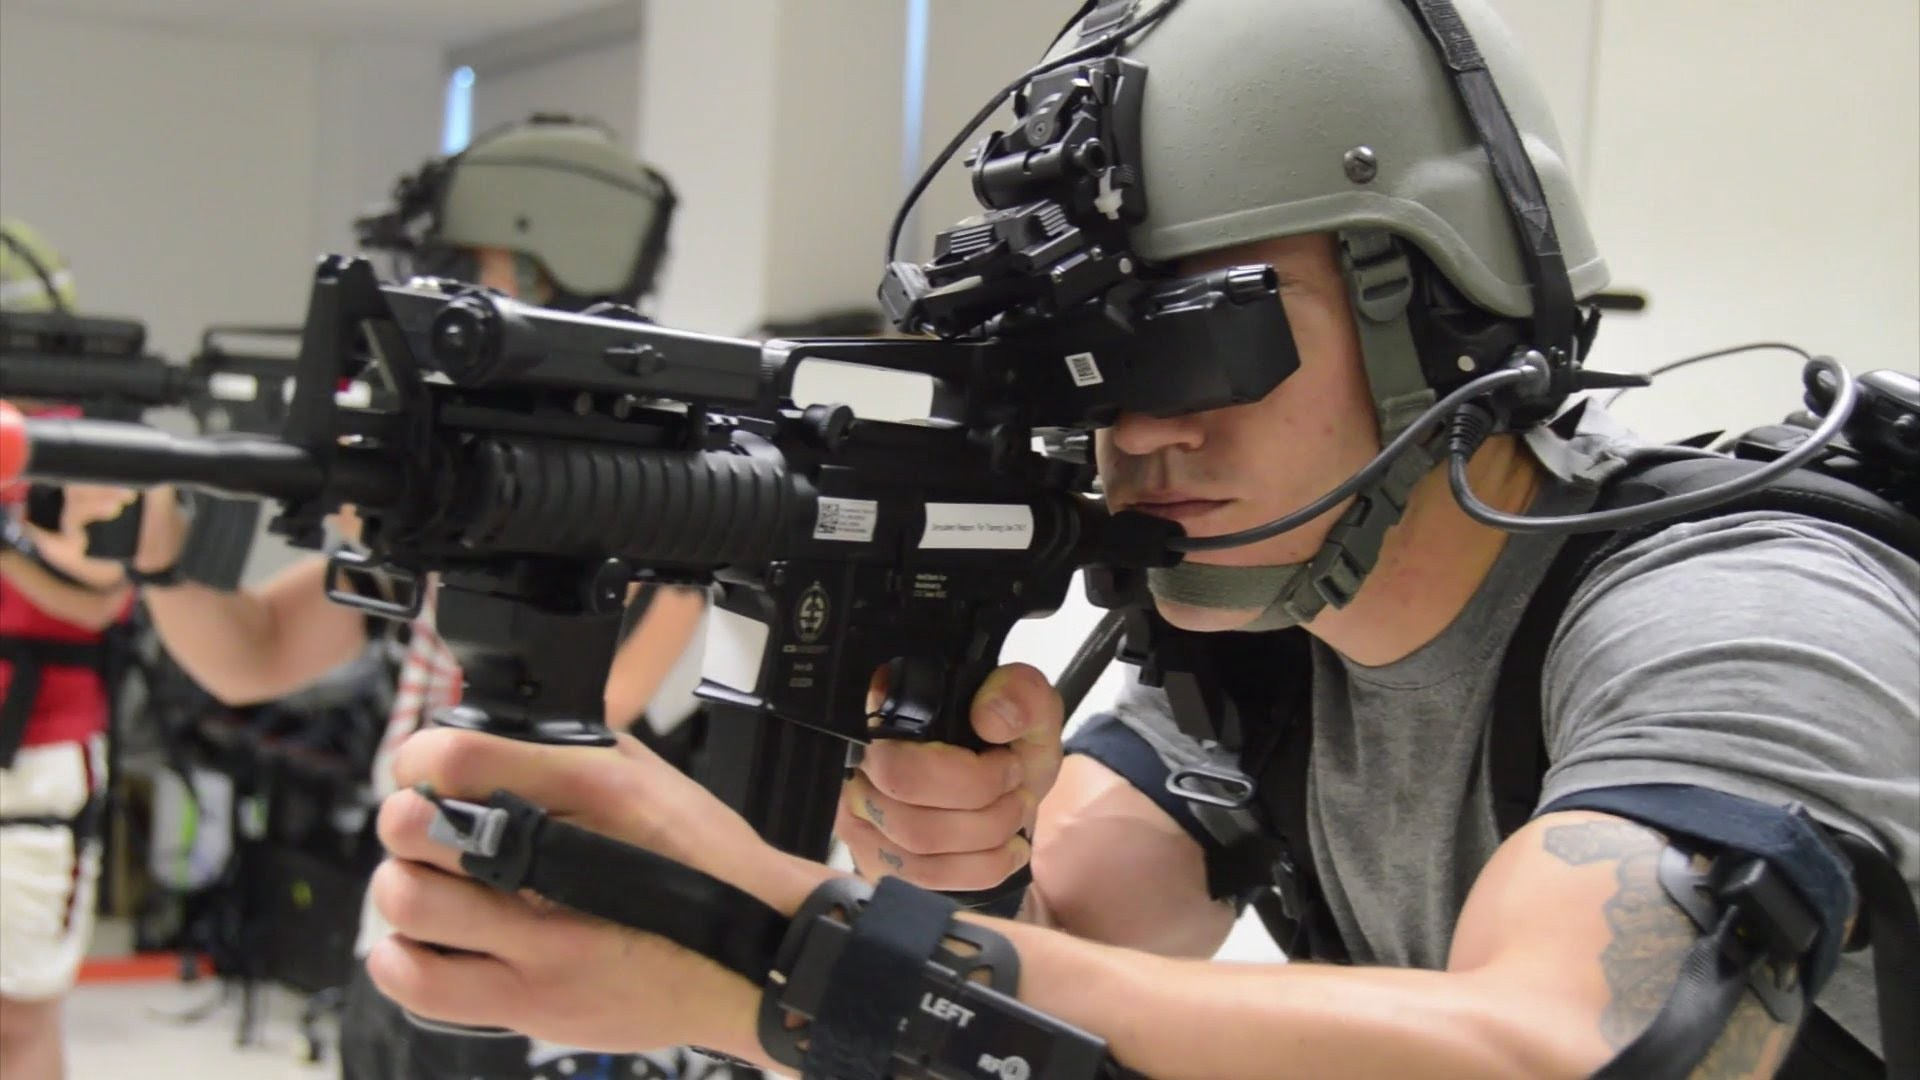 Pew Pew: Virtual Reality and the military